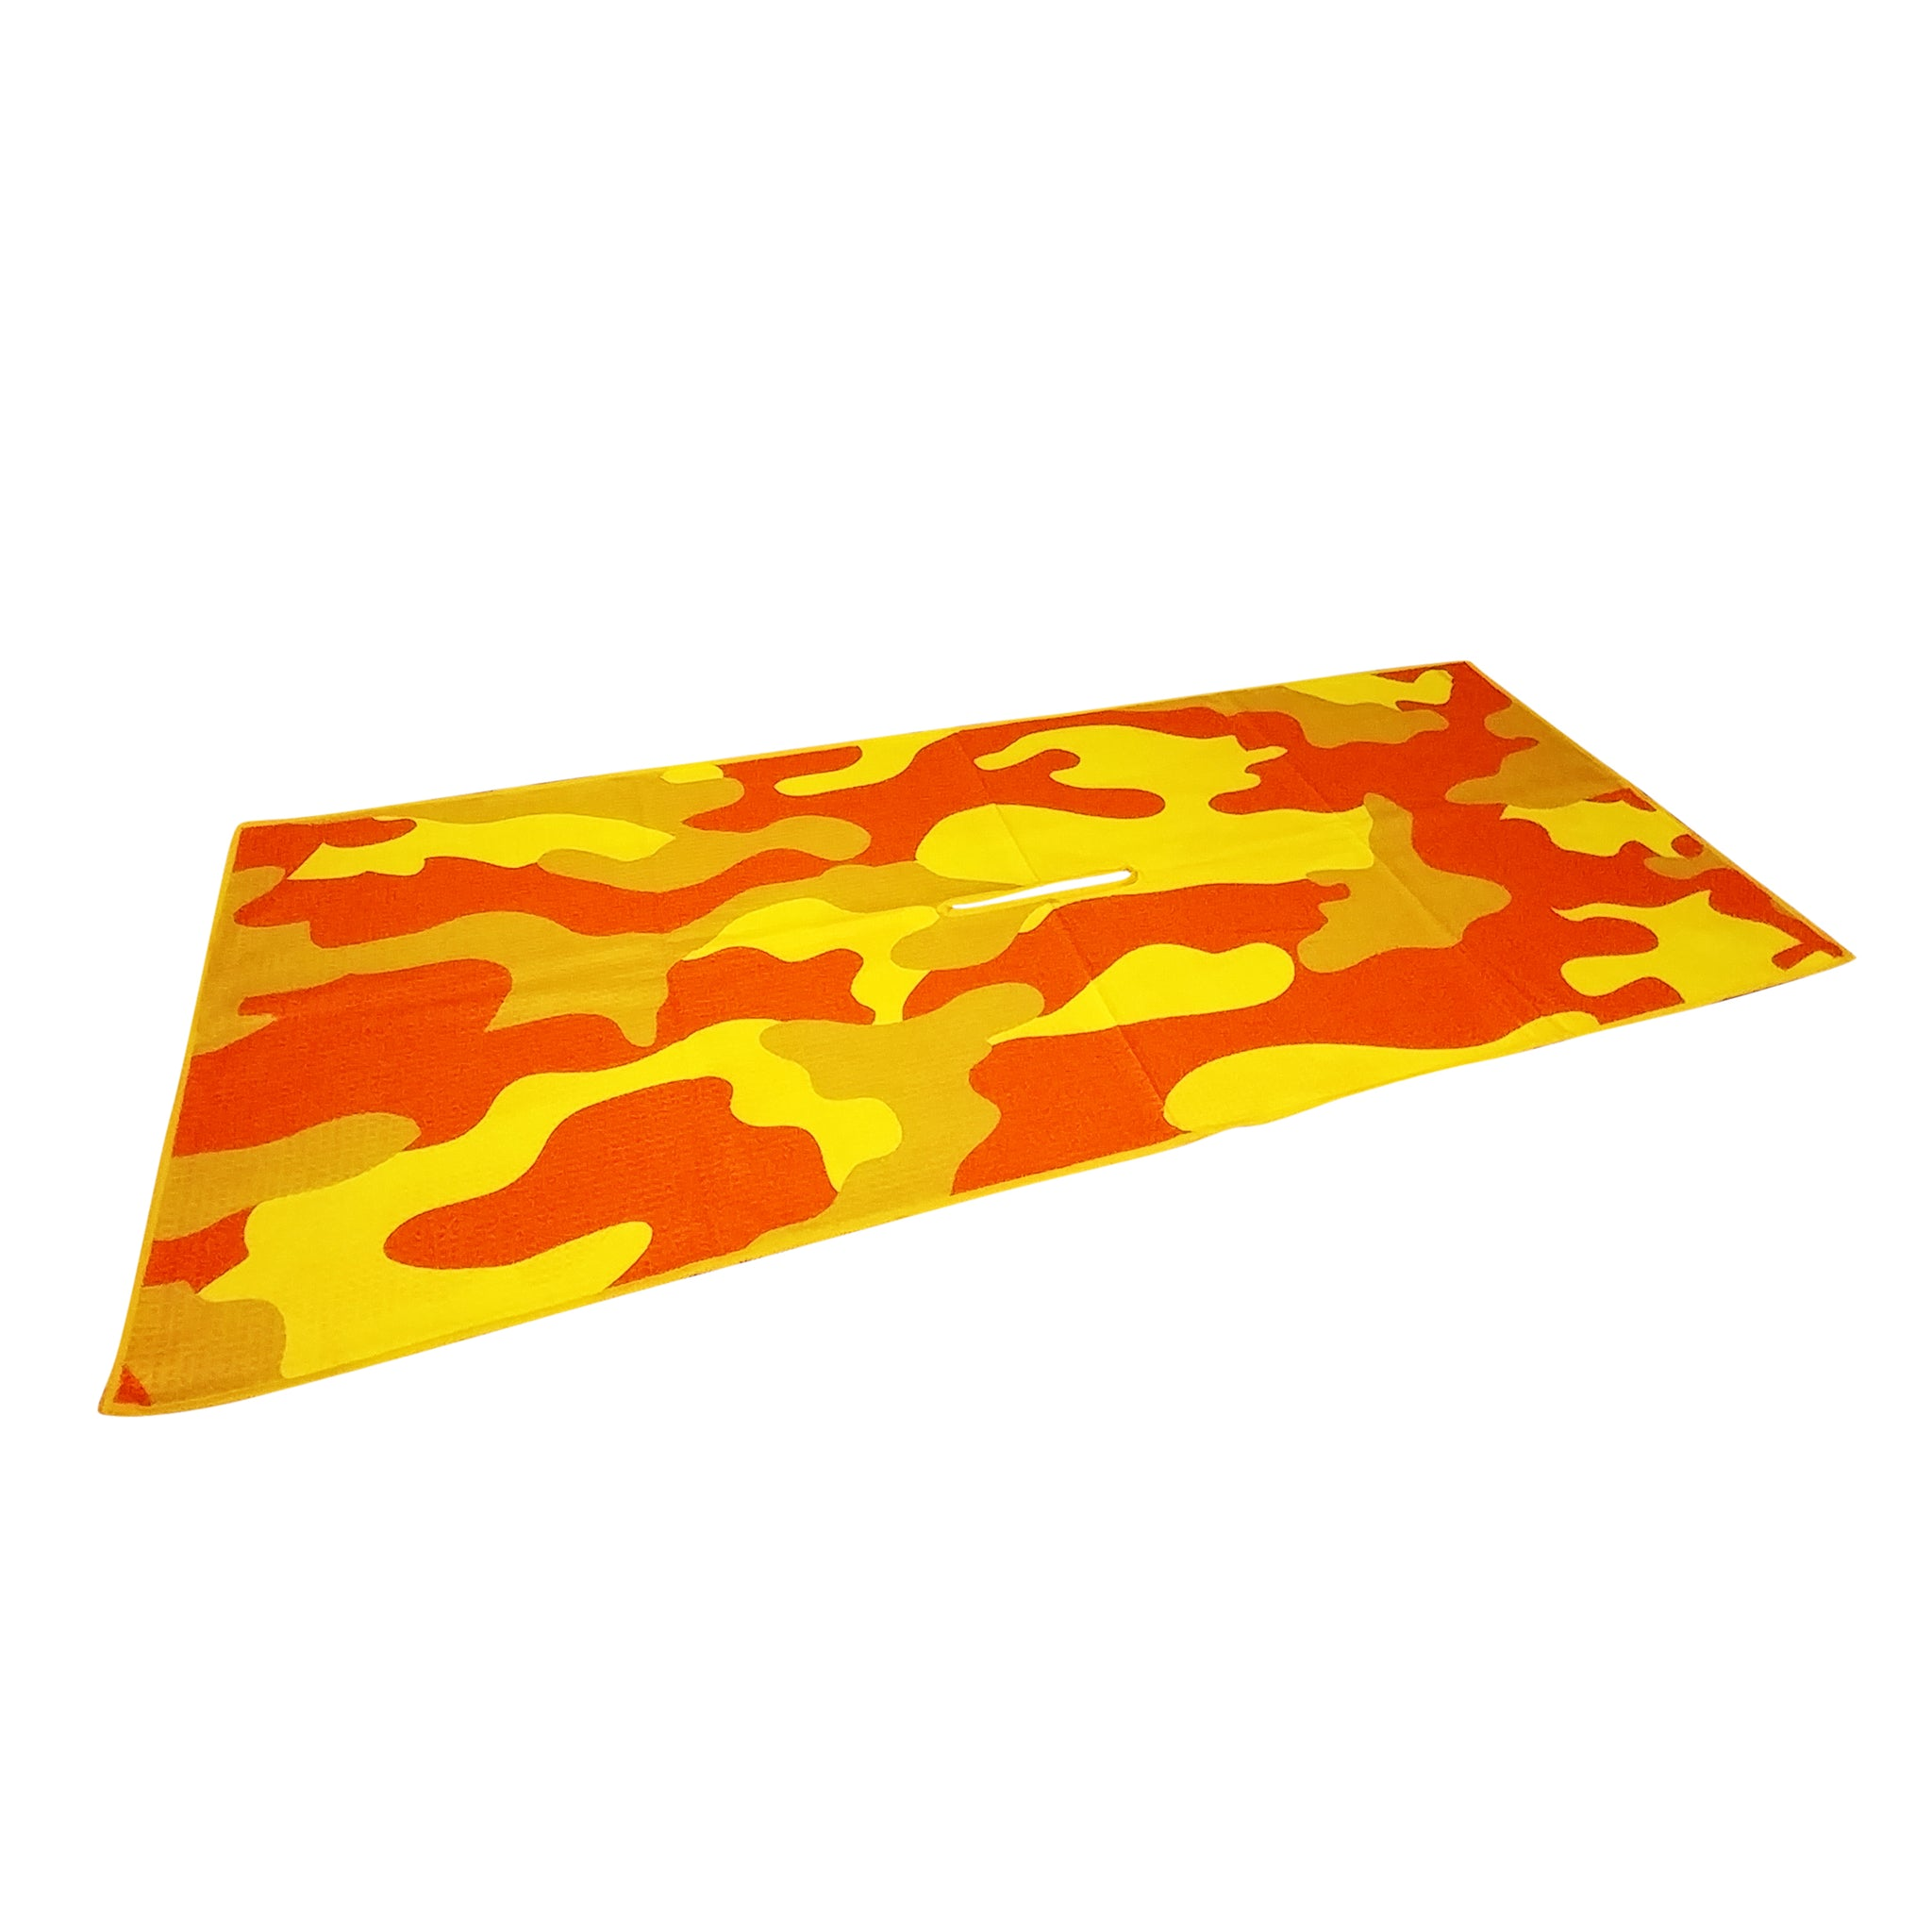 Rpg Center Cut Microfiber Golf Towel Waffle Weave Orange Red For Ball Planet